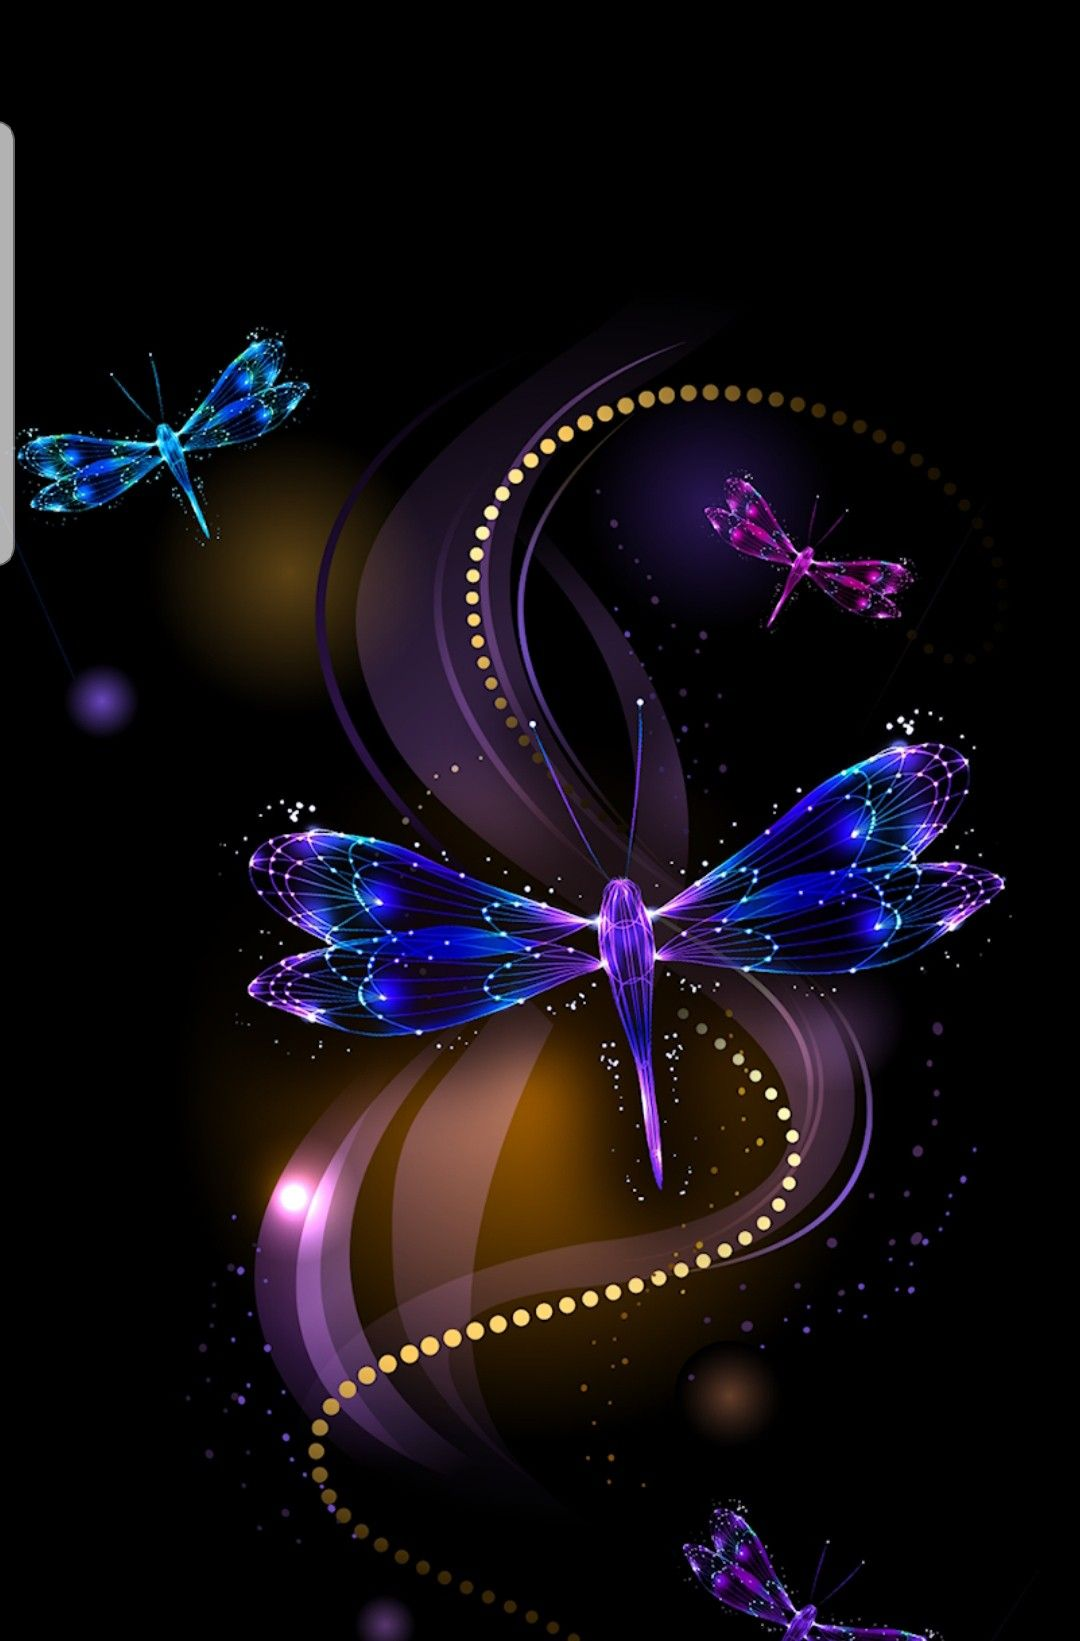 Pin By Eric And Carrie Carden On Dragonfly Dragonfly Wallpap